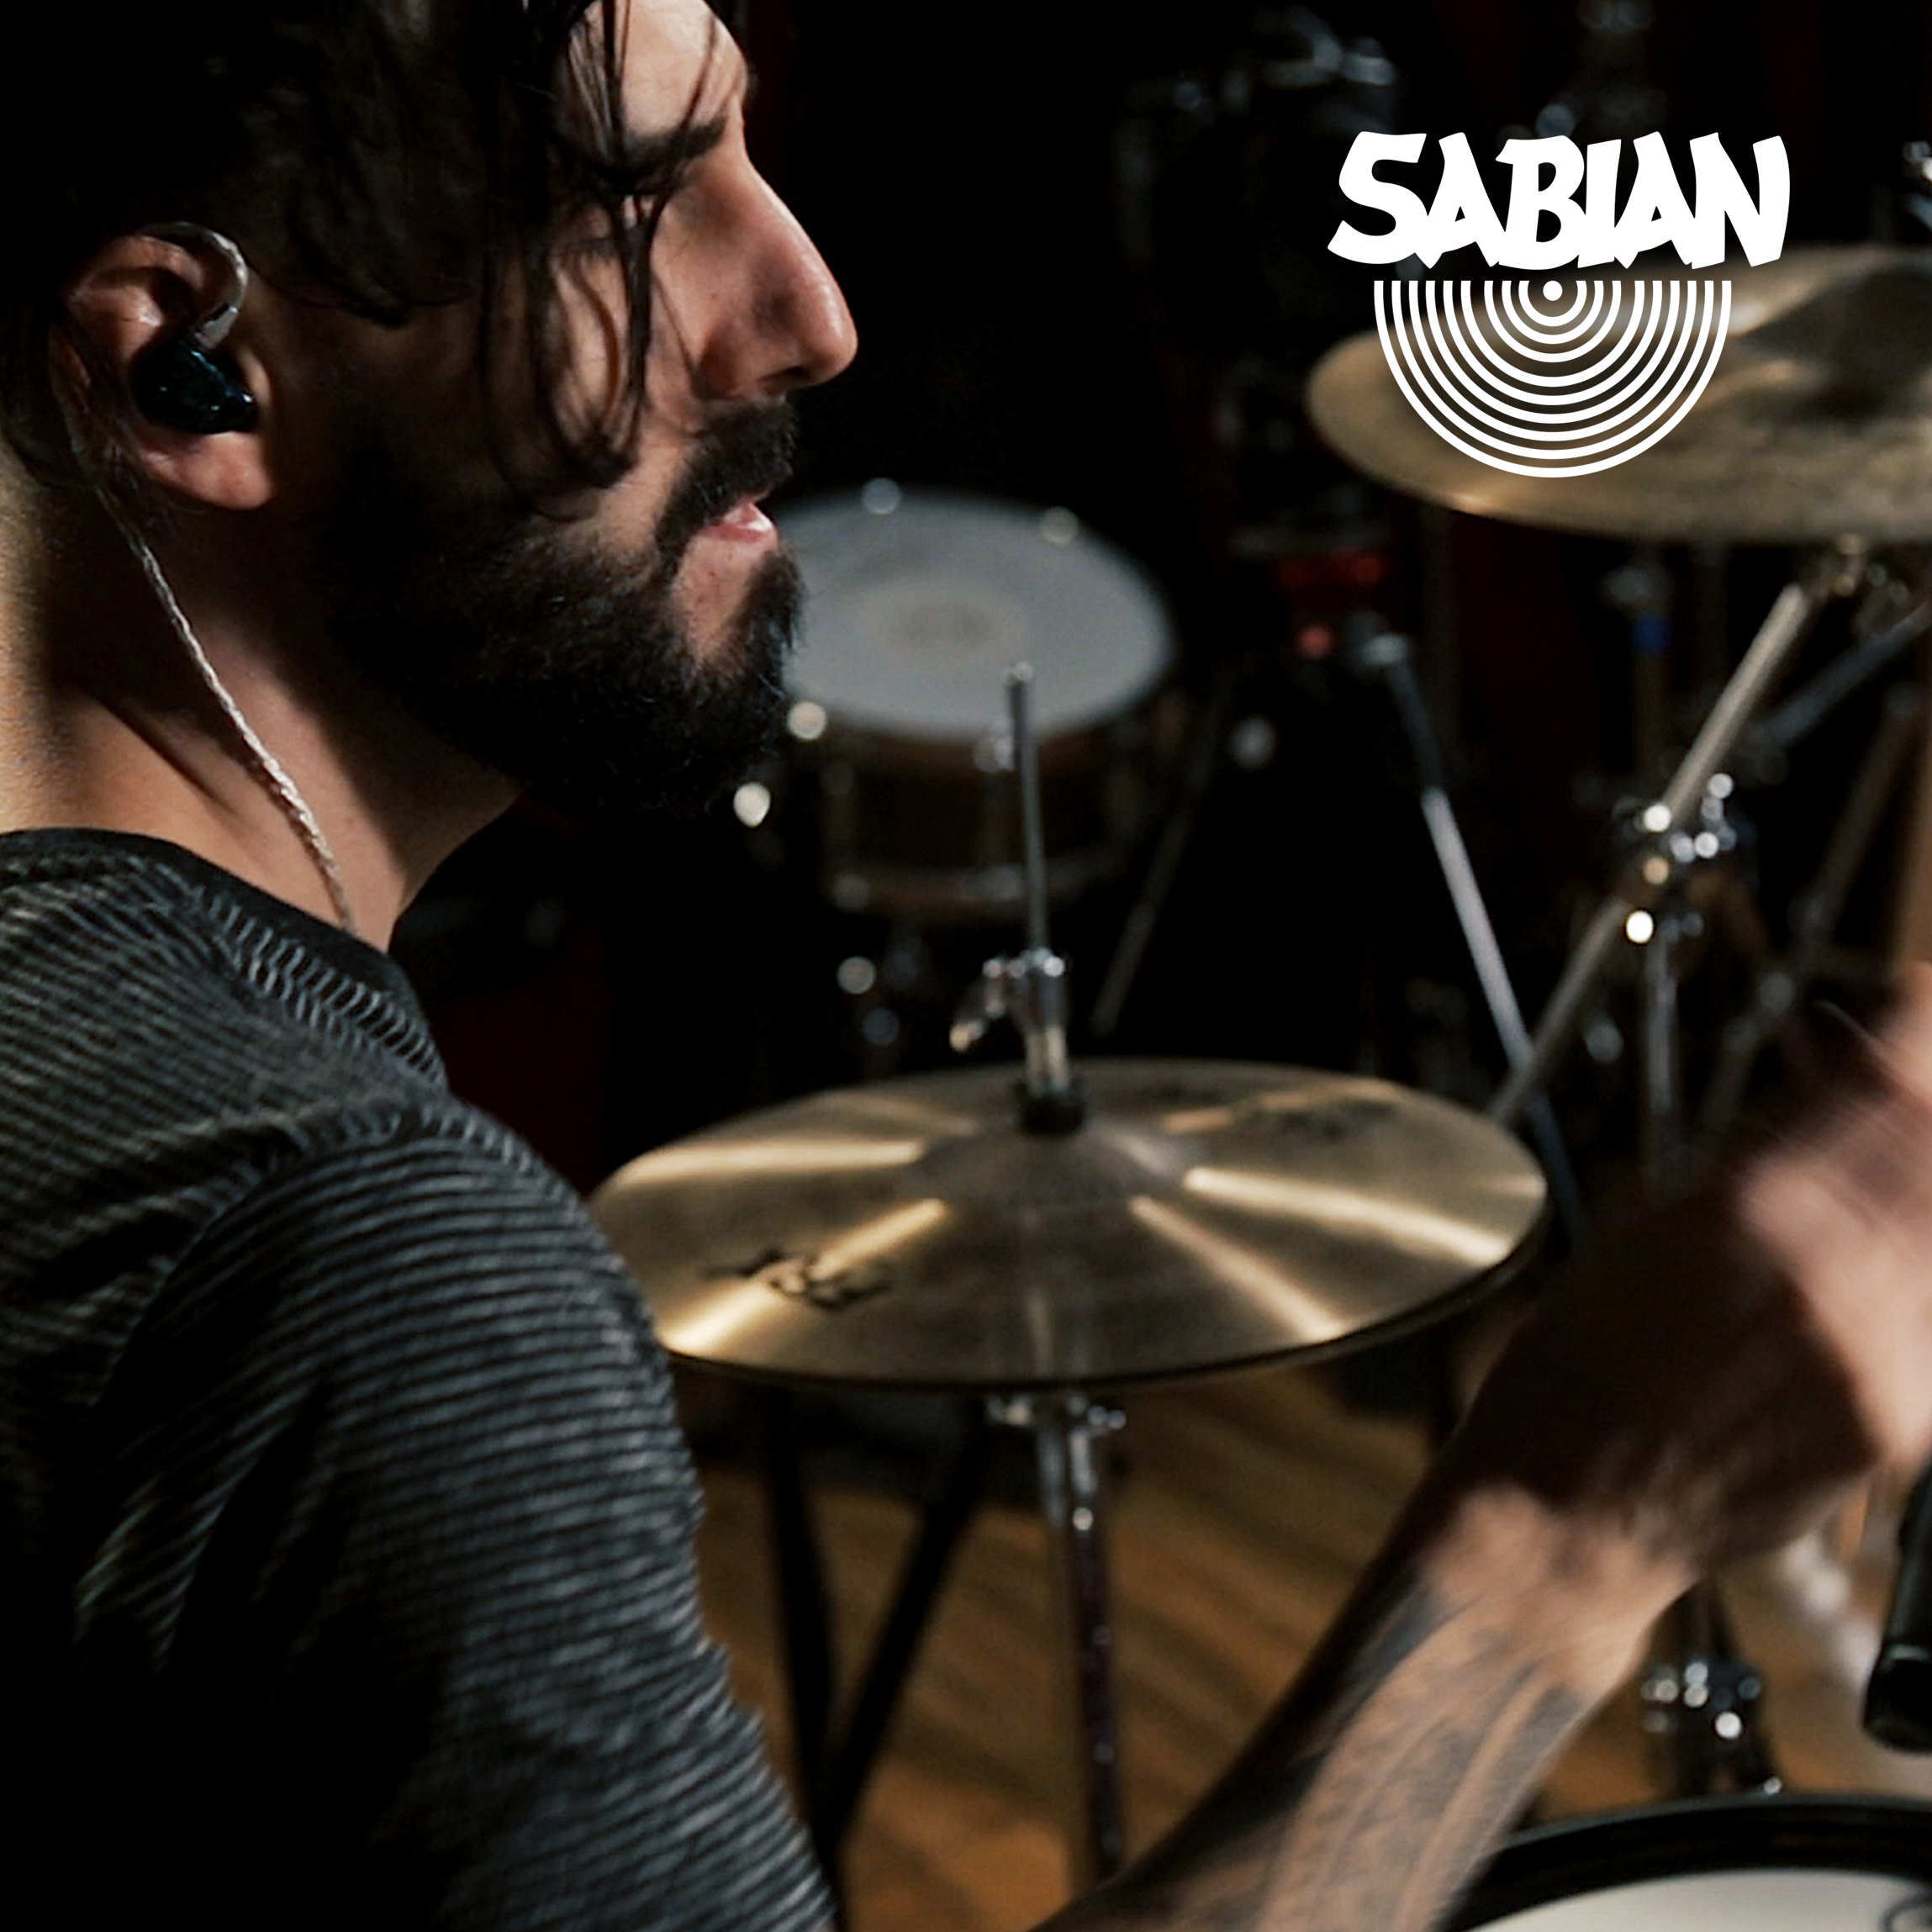 """SABIAN posts """"Drum Play-Through for new song """"Every Toll"""" - January 6th, 2019"""